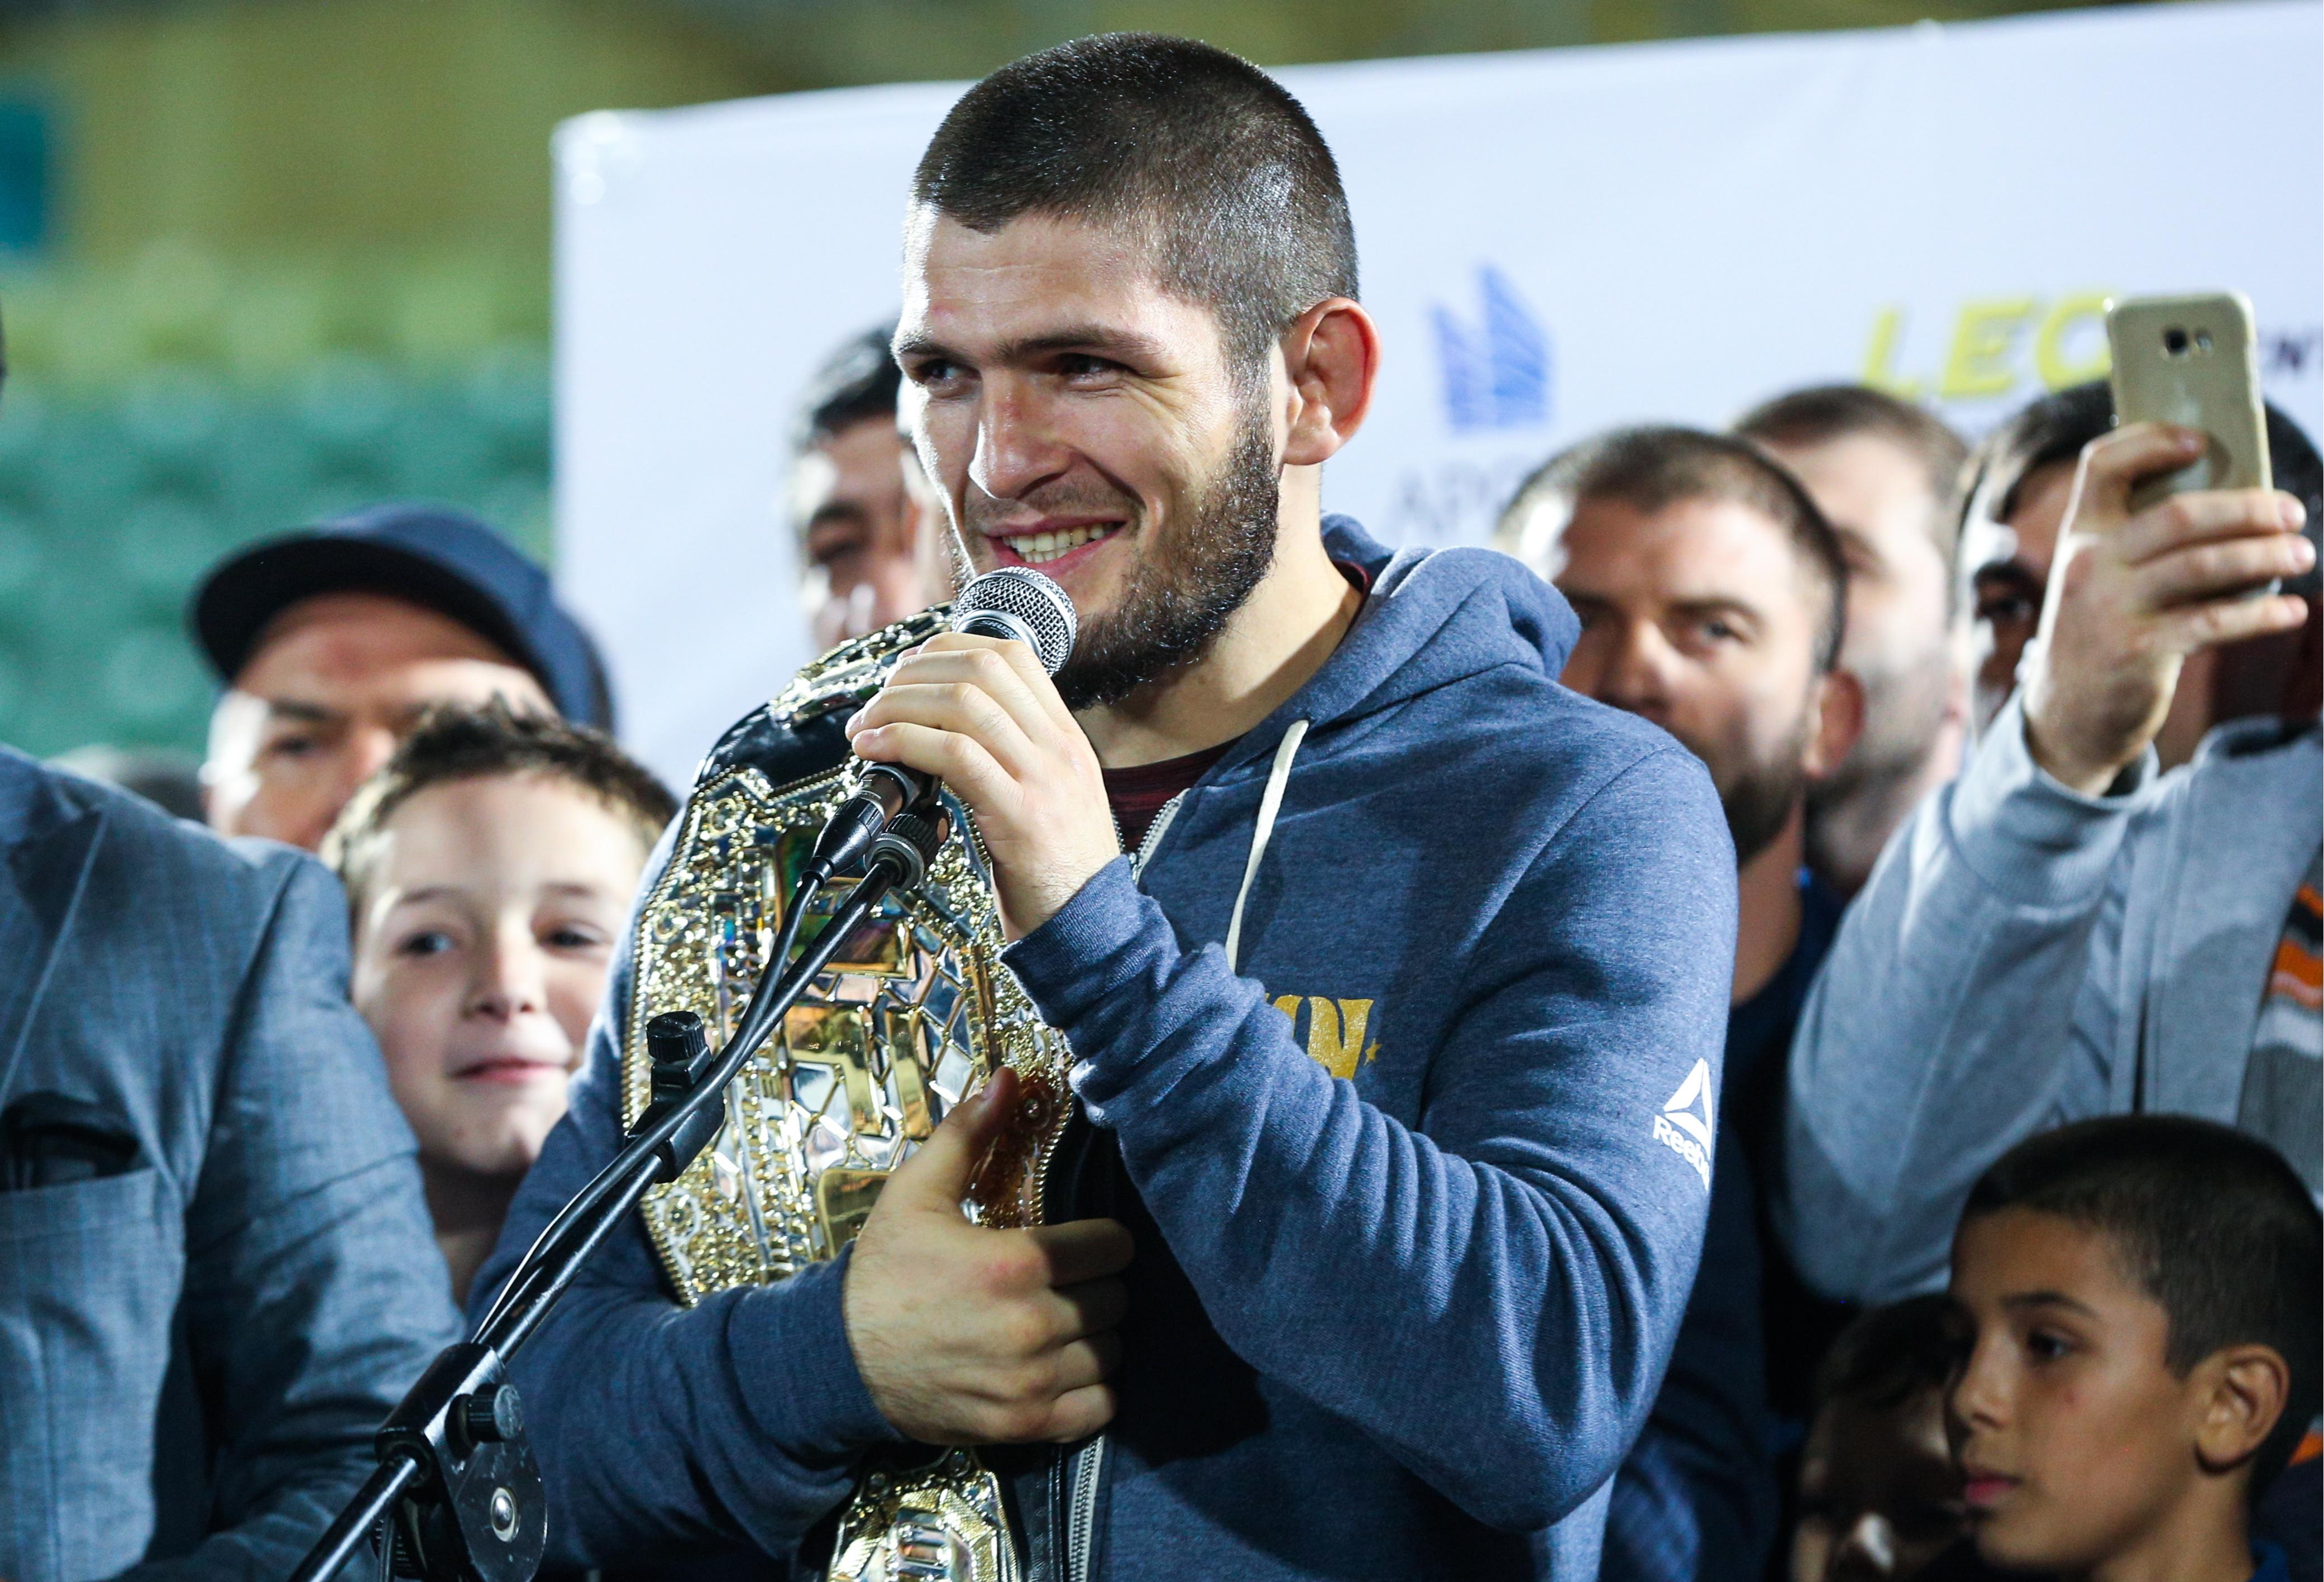 Khabib Nurmagomedov is keen to face Floyd Mayweather in Moscow, Russia